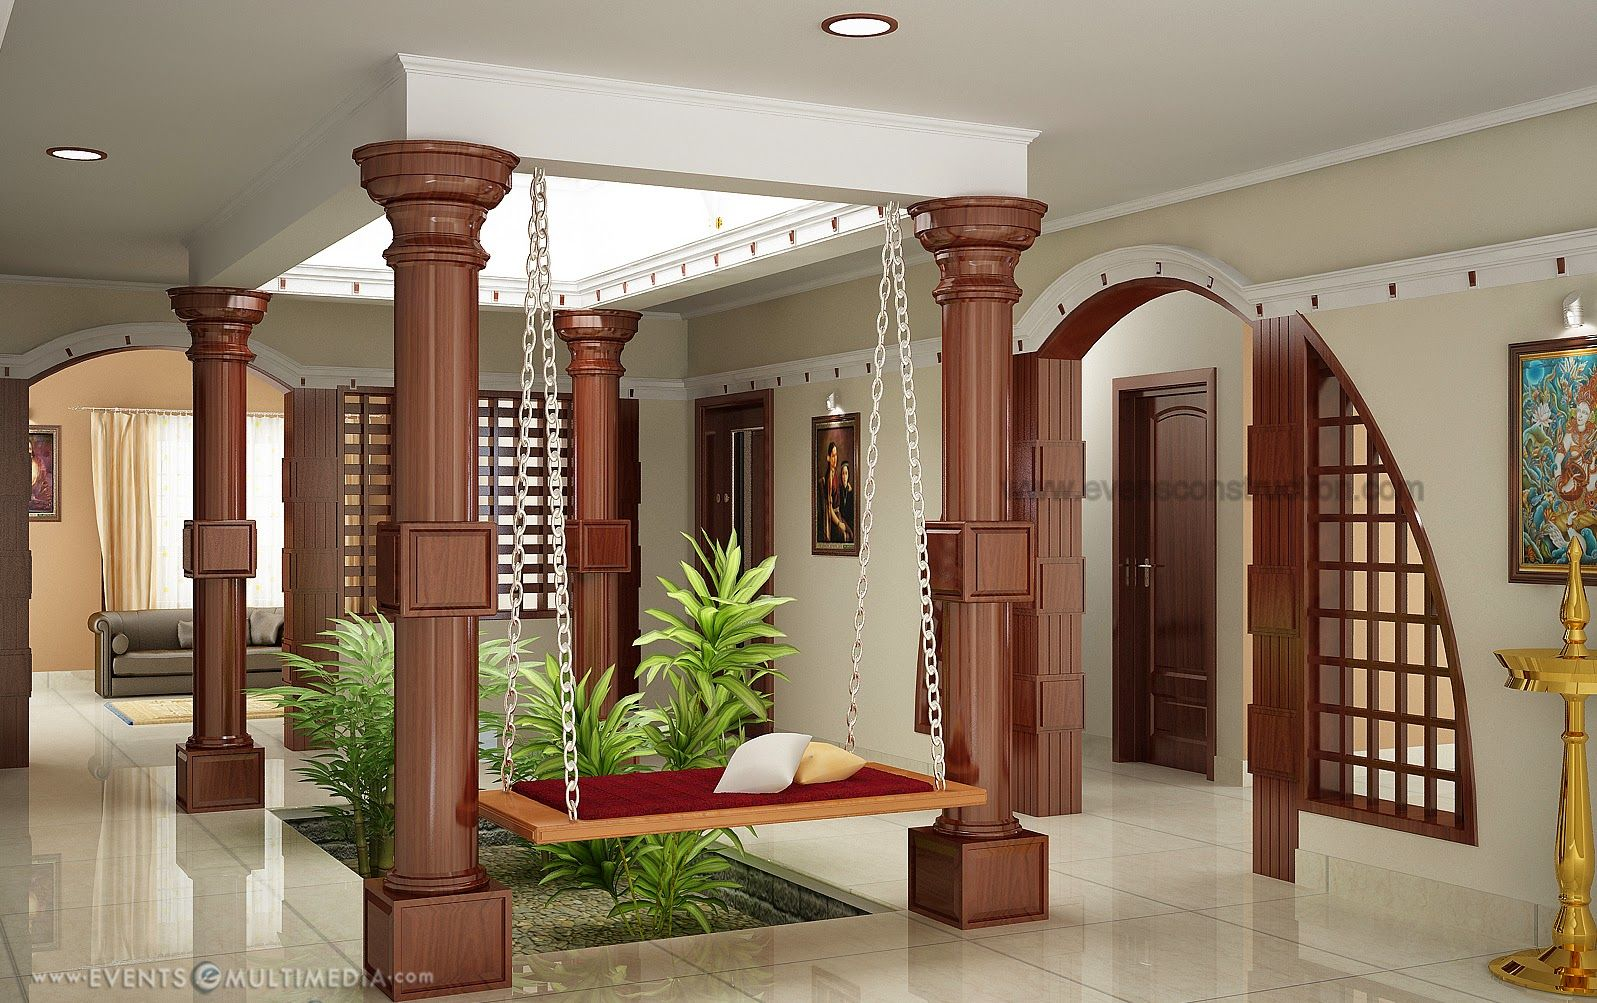 Interior Design Kerala Google Search Inside And Outside Pinterest Kerala Google Search